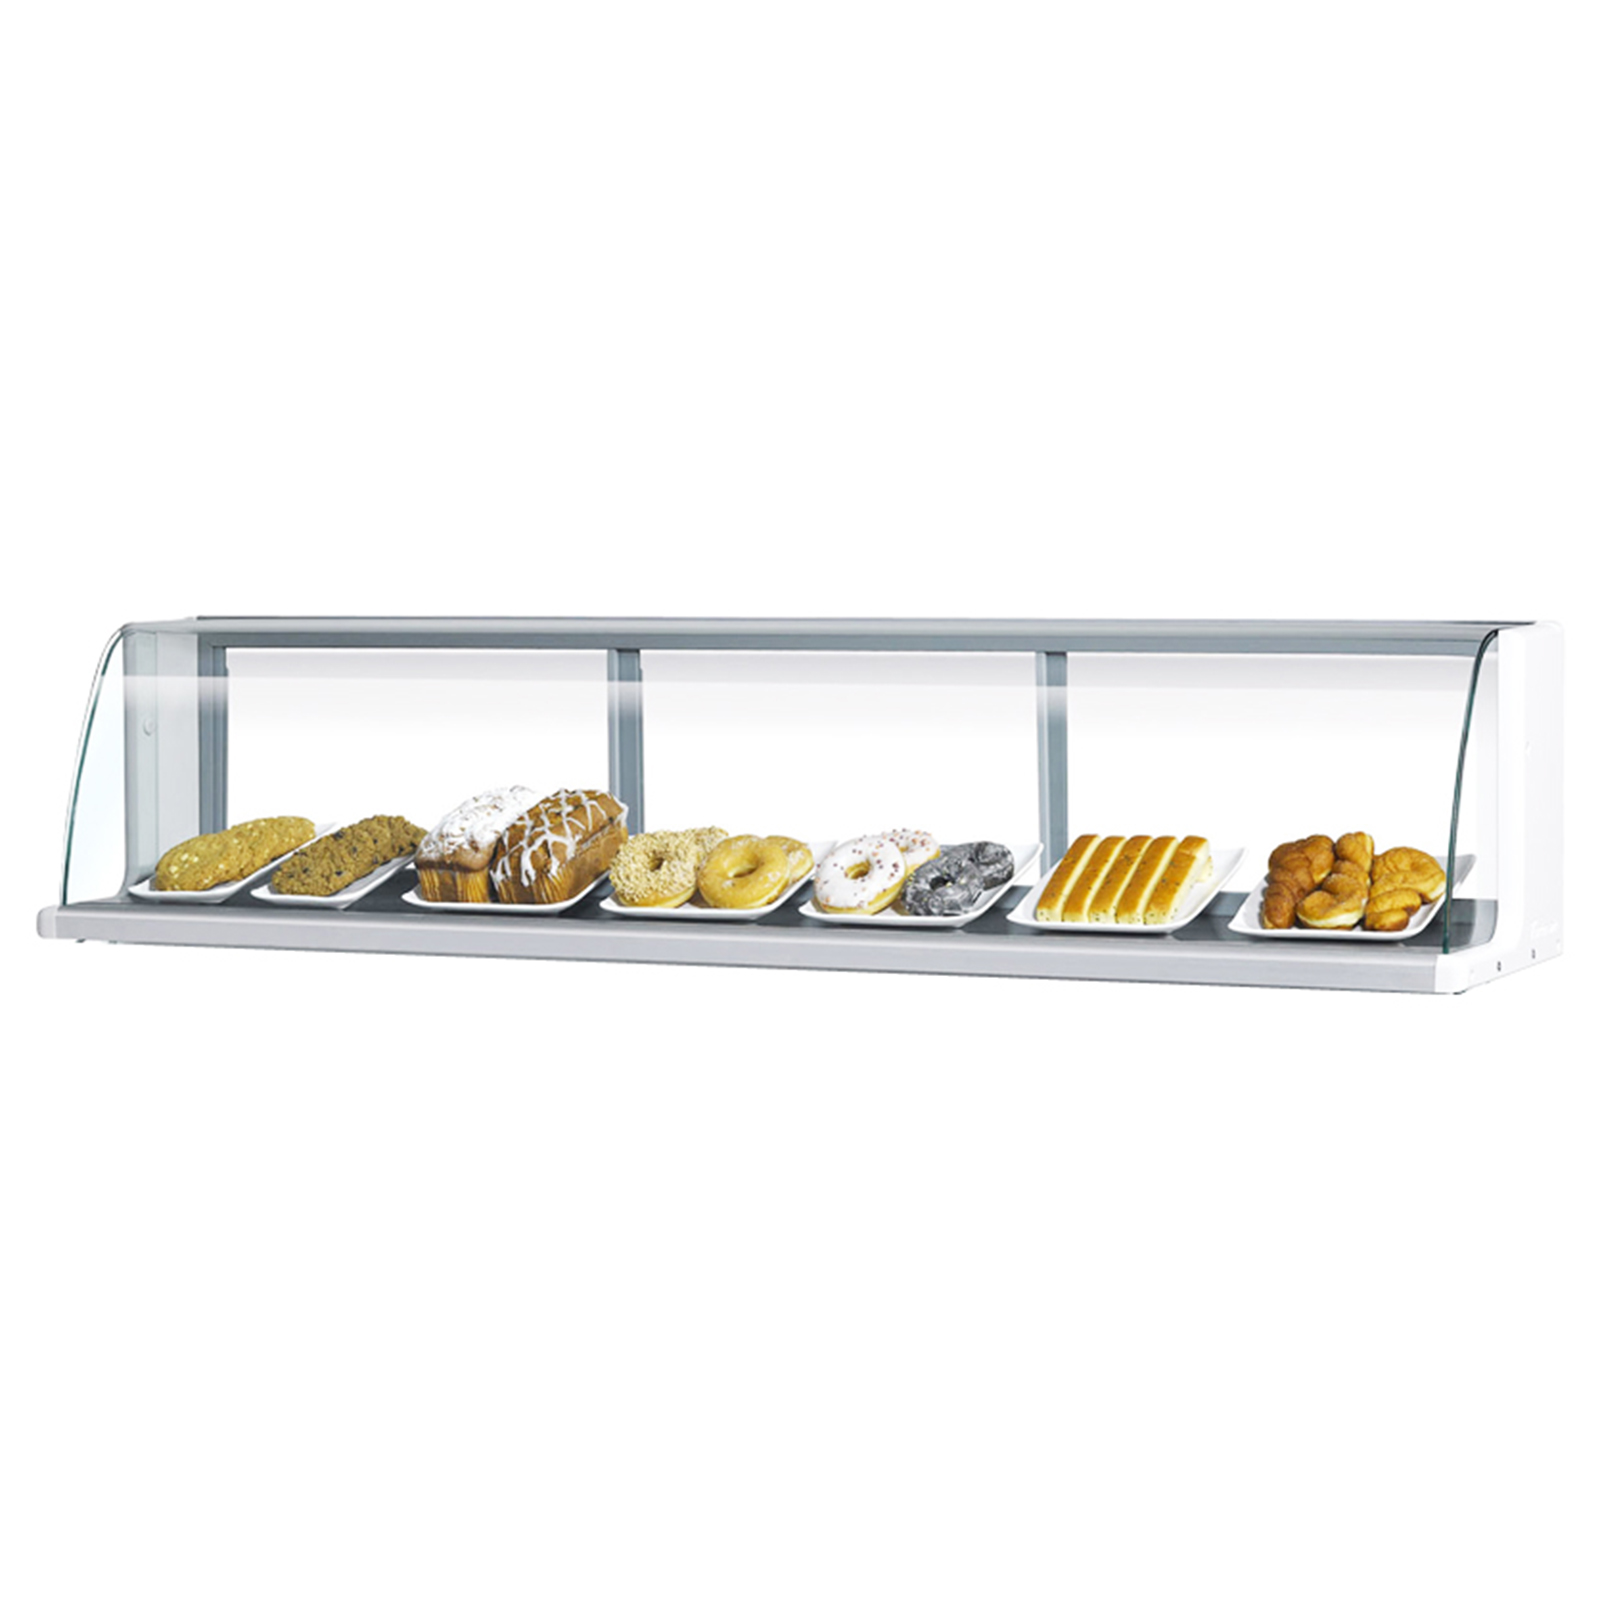 Turbo Air TOMD-75LW display case, non-refrigerated countertop